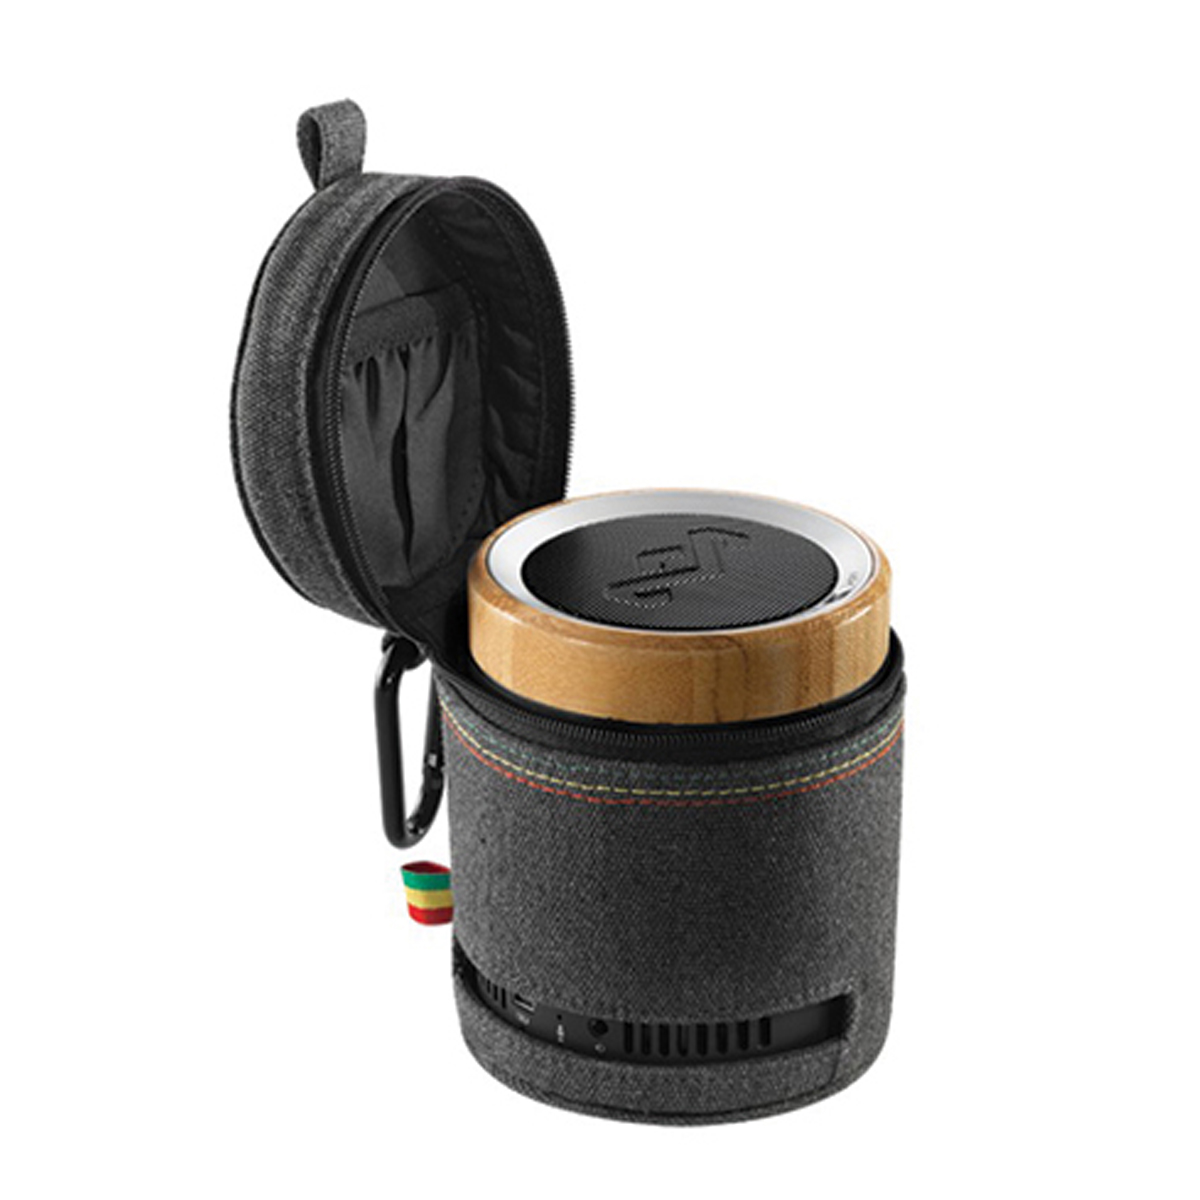 House of Marley CHANT Portable Audio System with Bluetooth